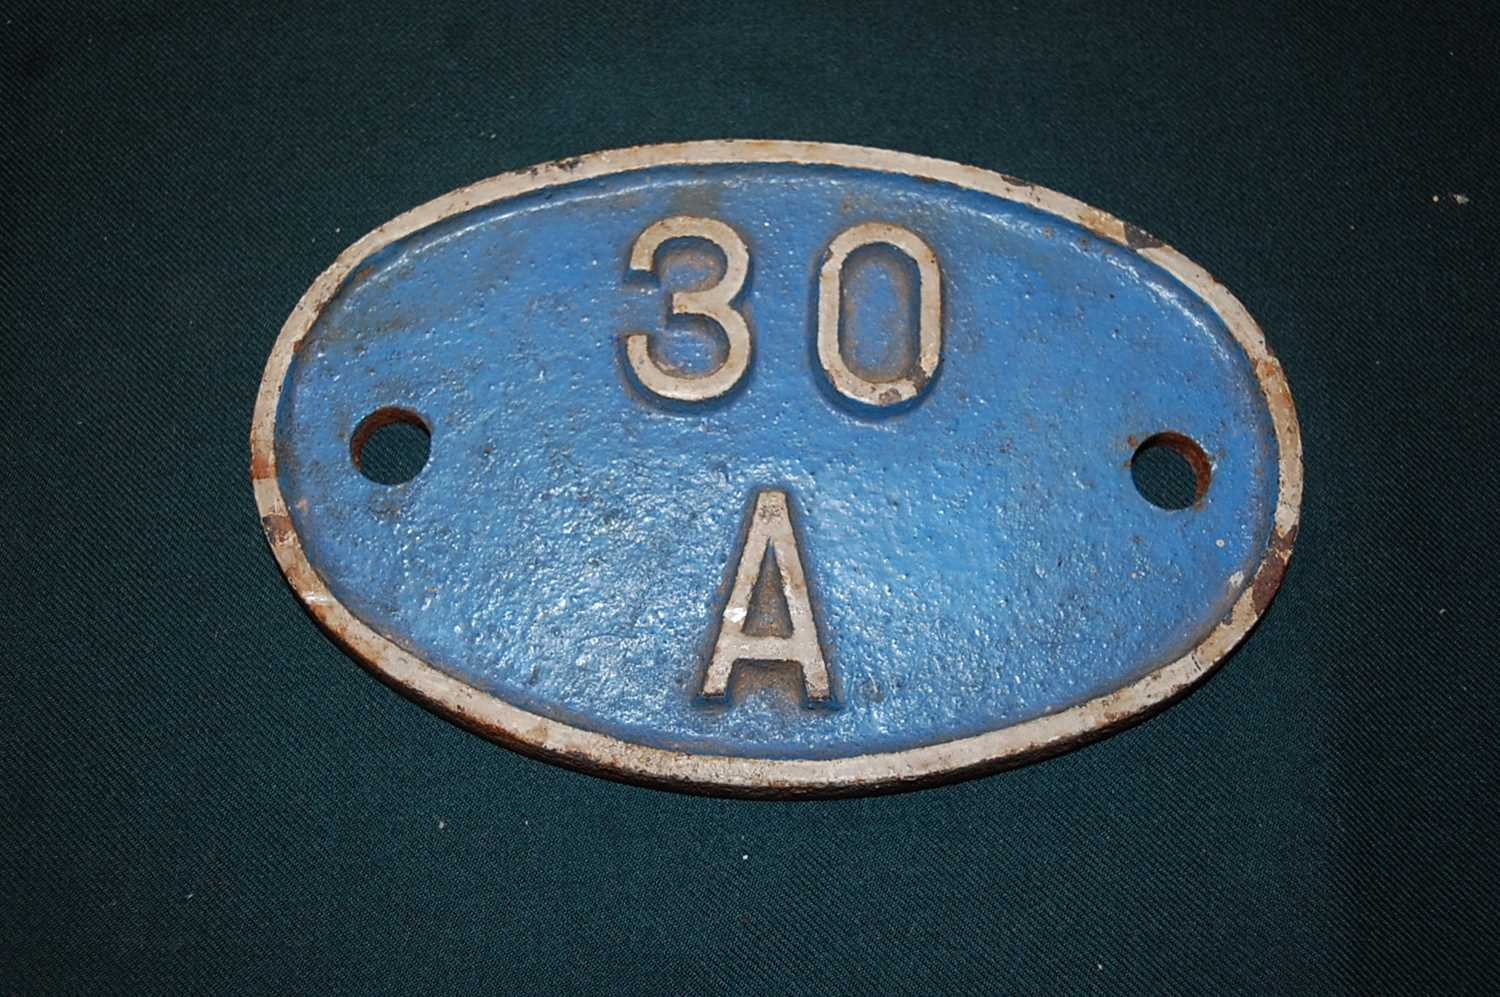 Original Shed Plate, 30a, Stratford, white on blue - Image 2 of 3